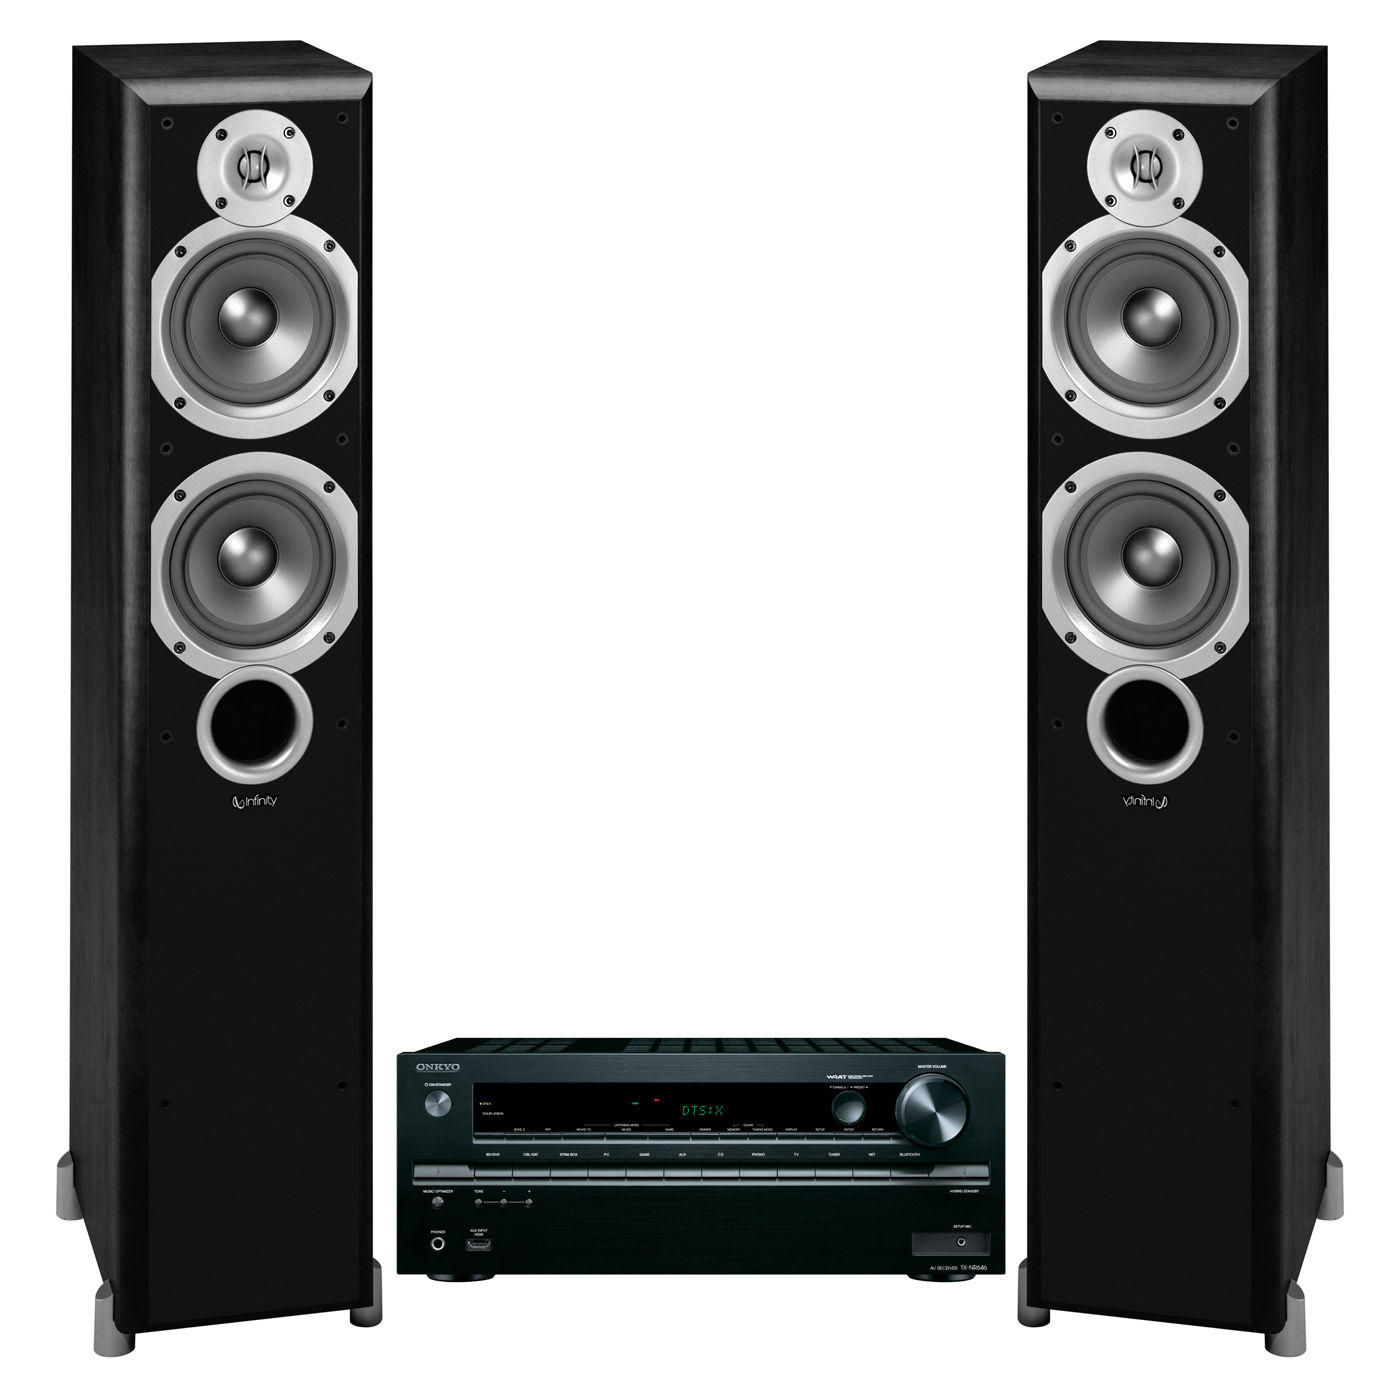 Onkyo TXNR646 7.2 Channel w/ Infinity Primus P253 Floorstanding Speakers (Black)